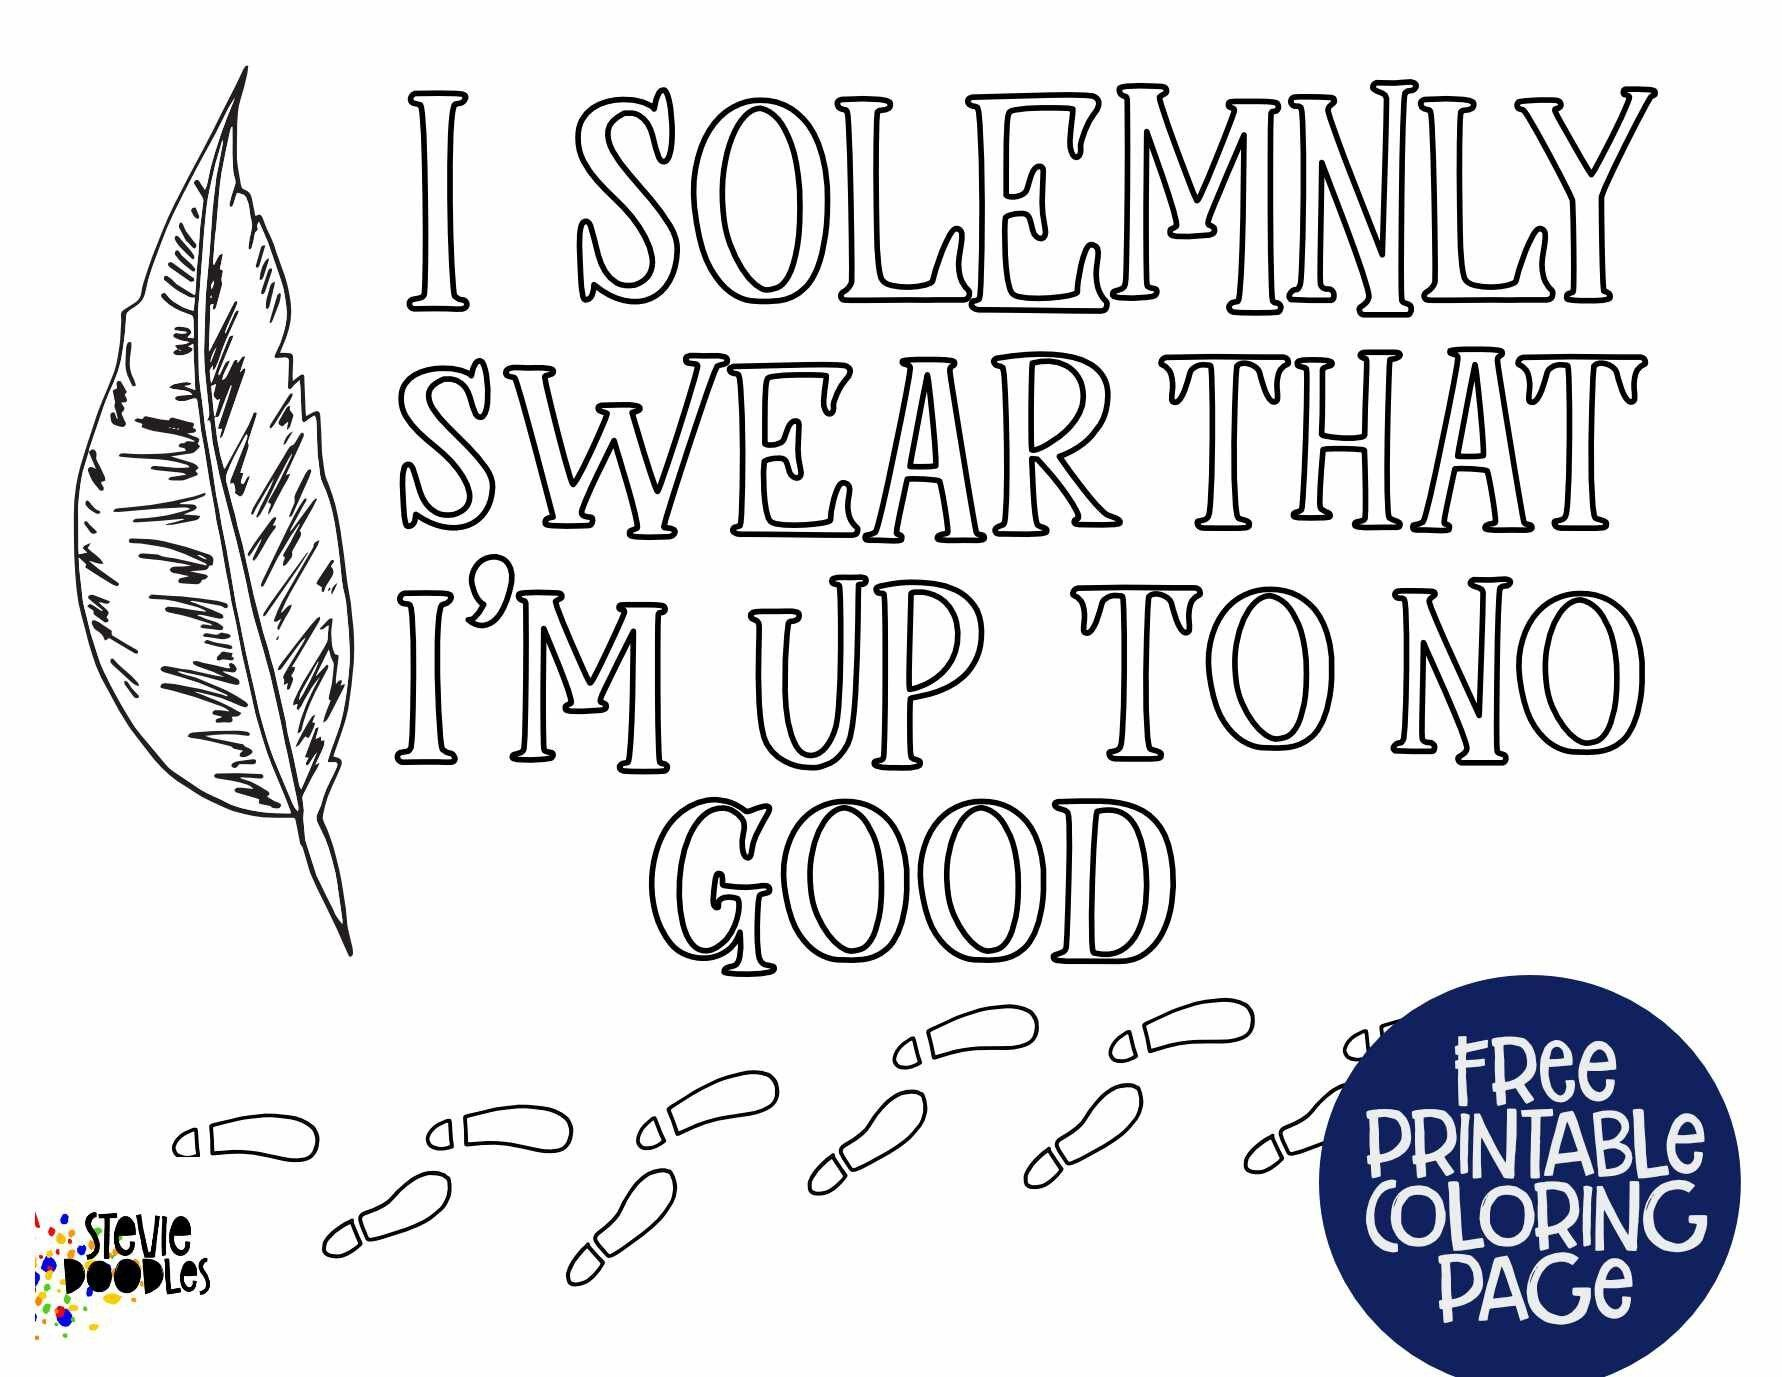 Free Printable I Solemnly Swear That I M Up To No Good Footprints Harry Potter S Free Printable Coloring Free Printable Coloring Pages Free Printables [ 1377 x 1782 Pixel ]